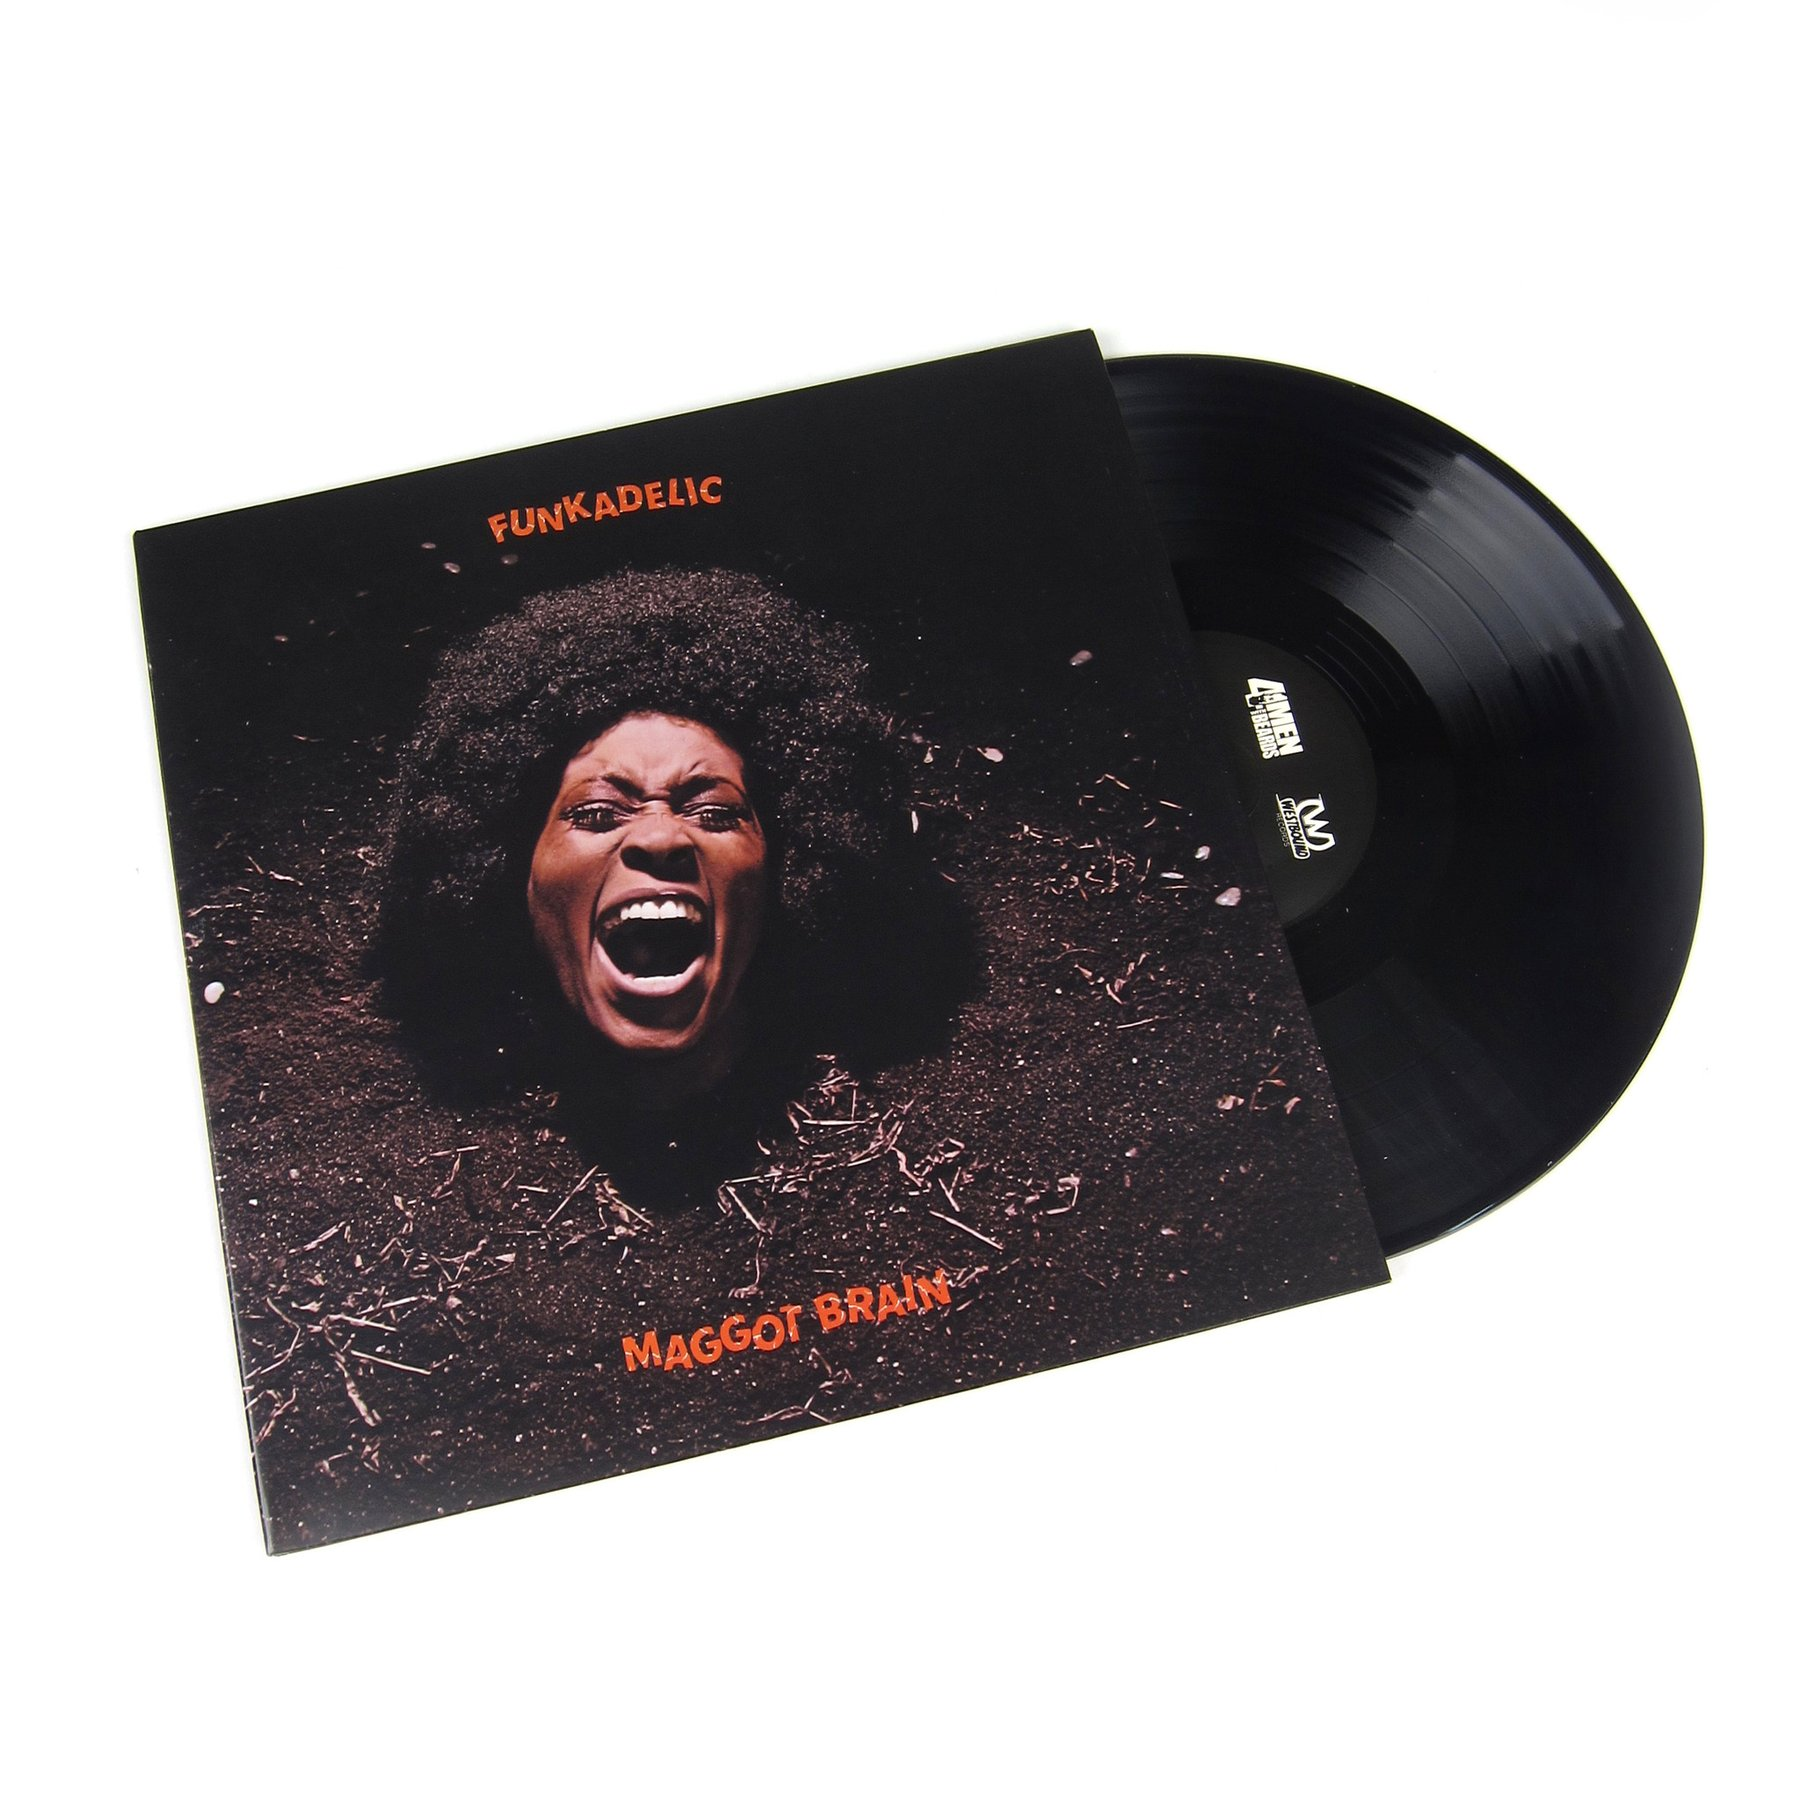 8. Funkadelic – Maggot Brain - I listen to this song a LOT! Listen to it.